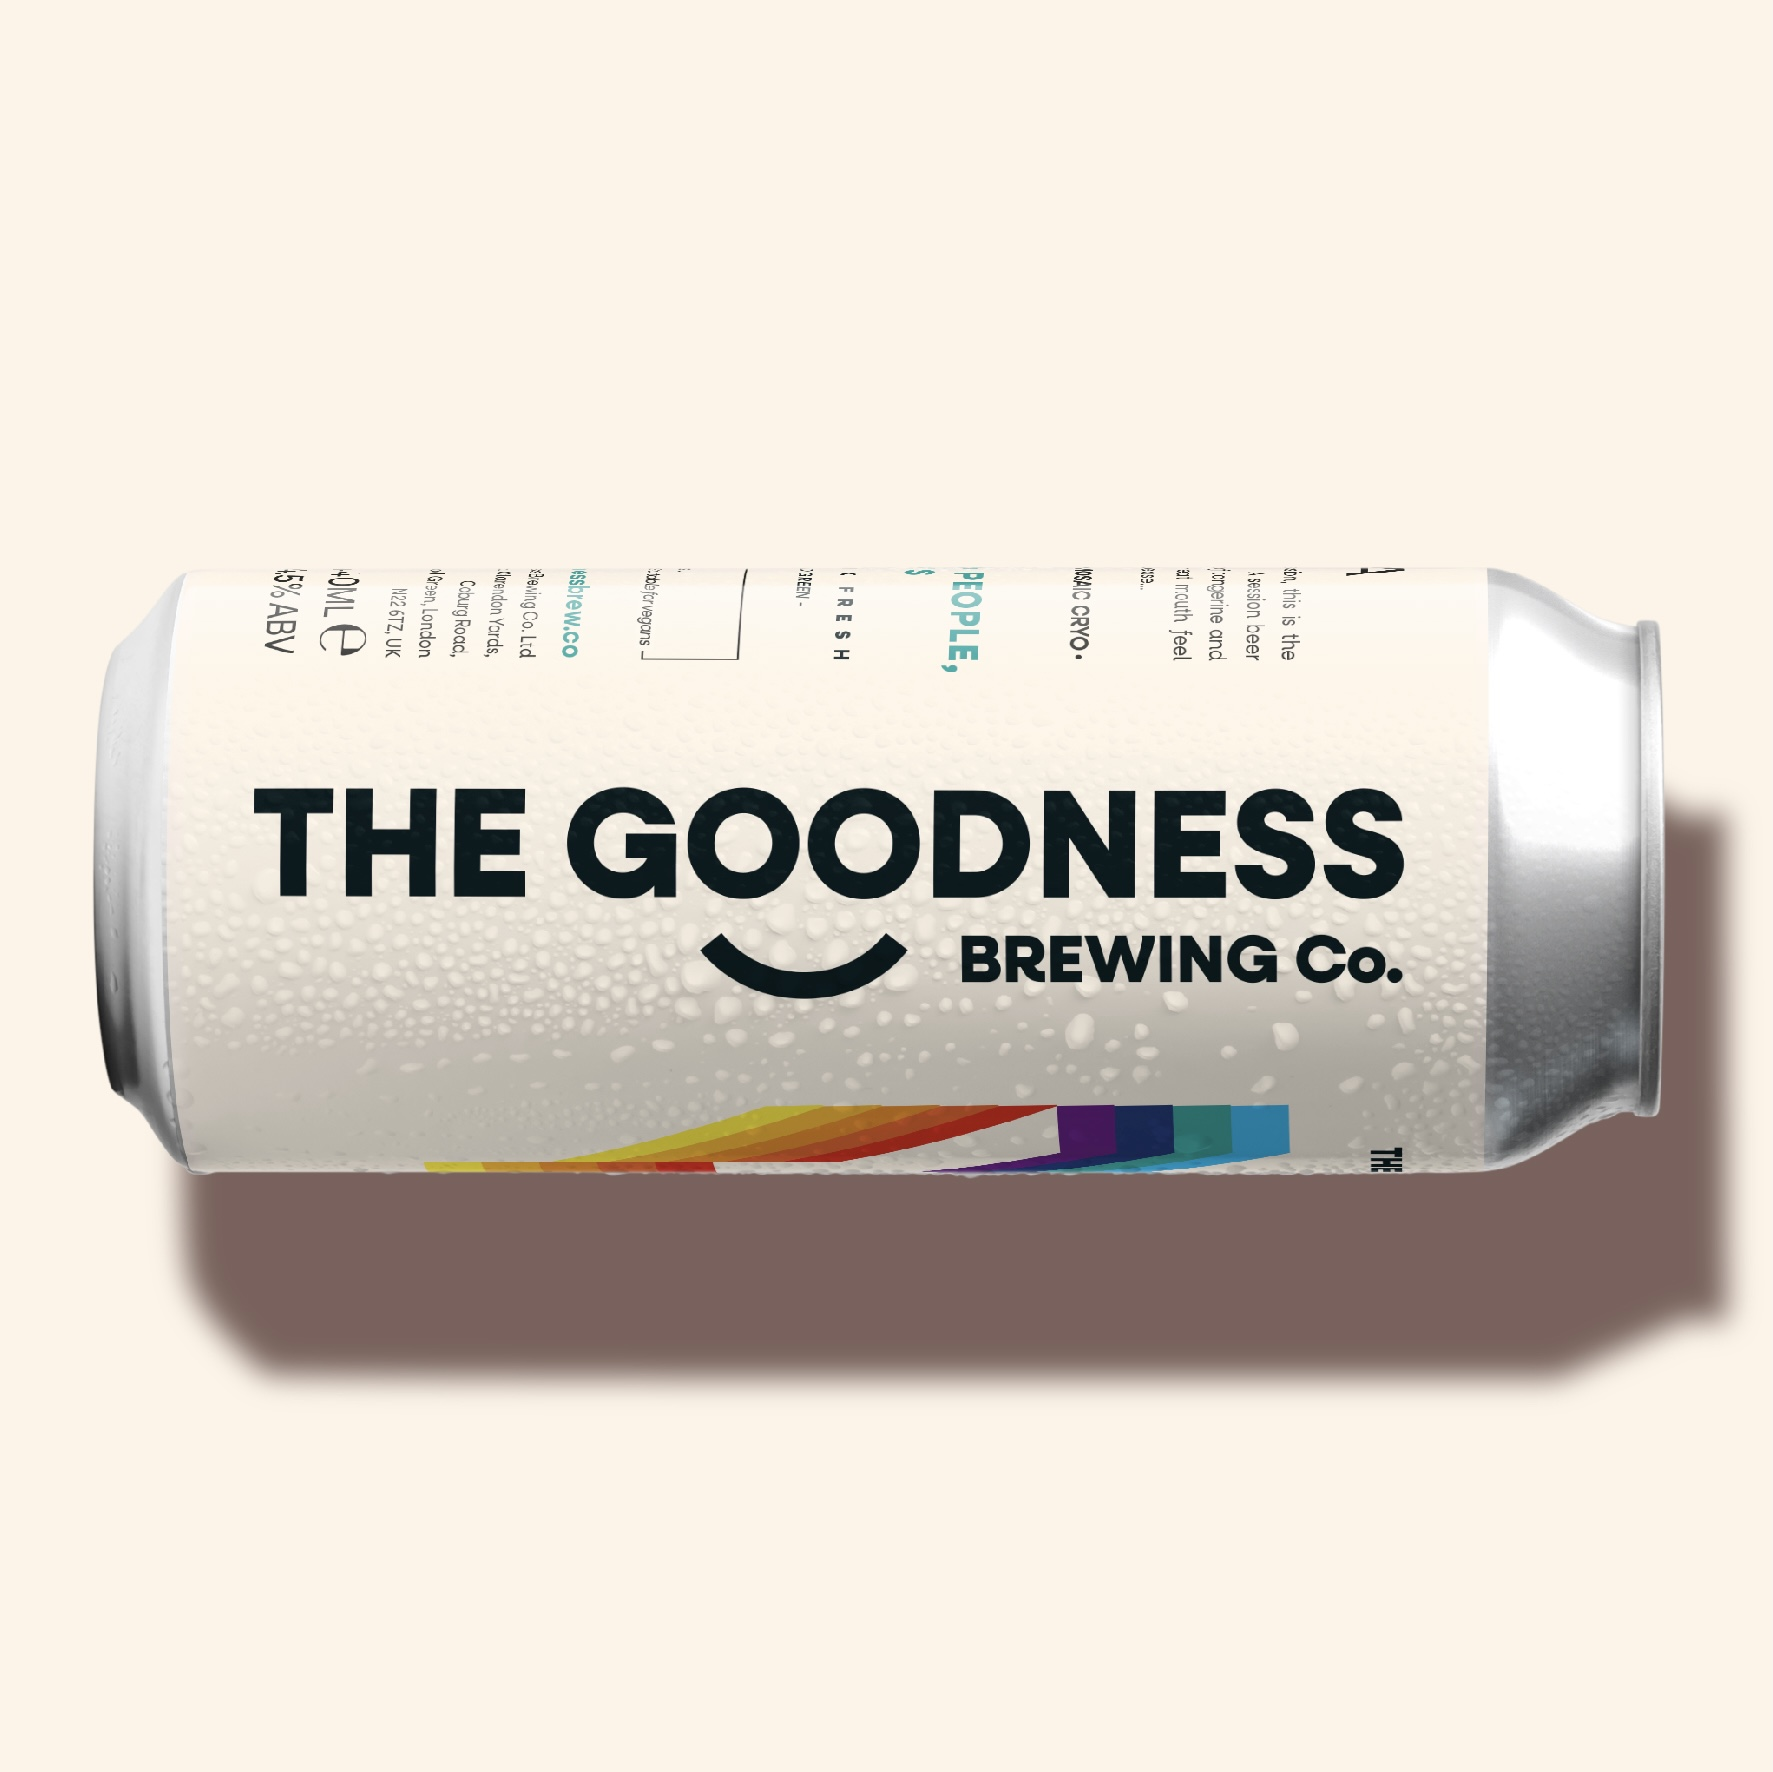 Bright & Bold Rebrands The Goodness Brewing Co